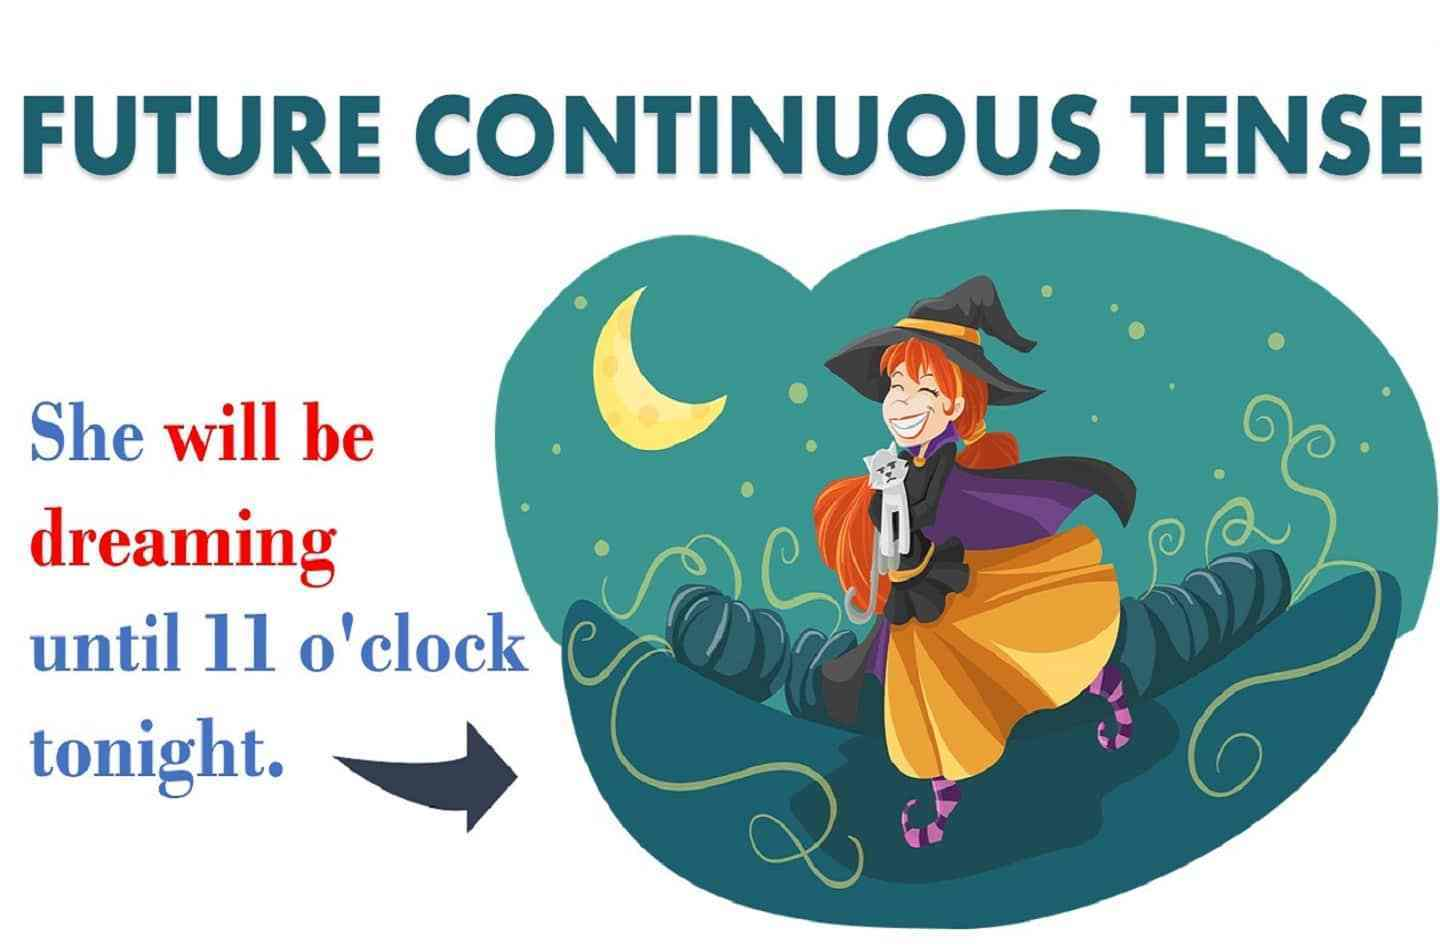 Future clipart ongoing. Continuous tense usage formula